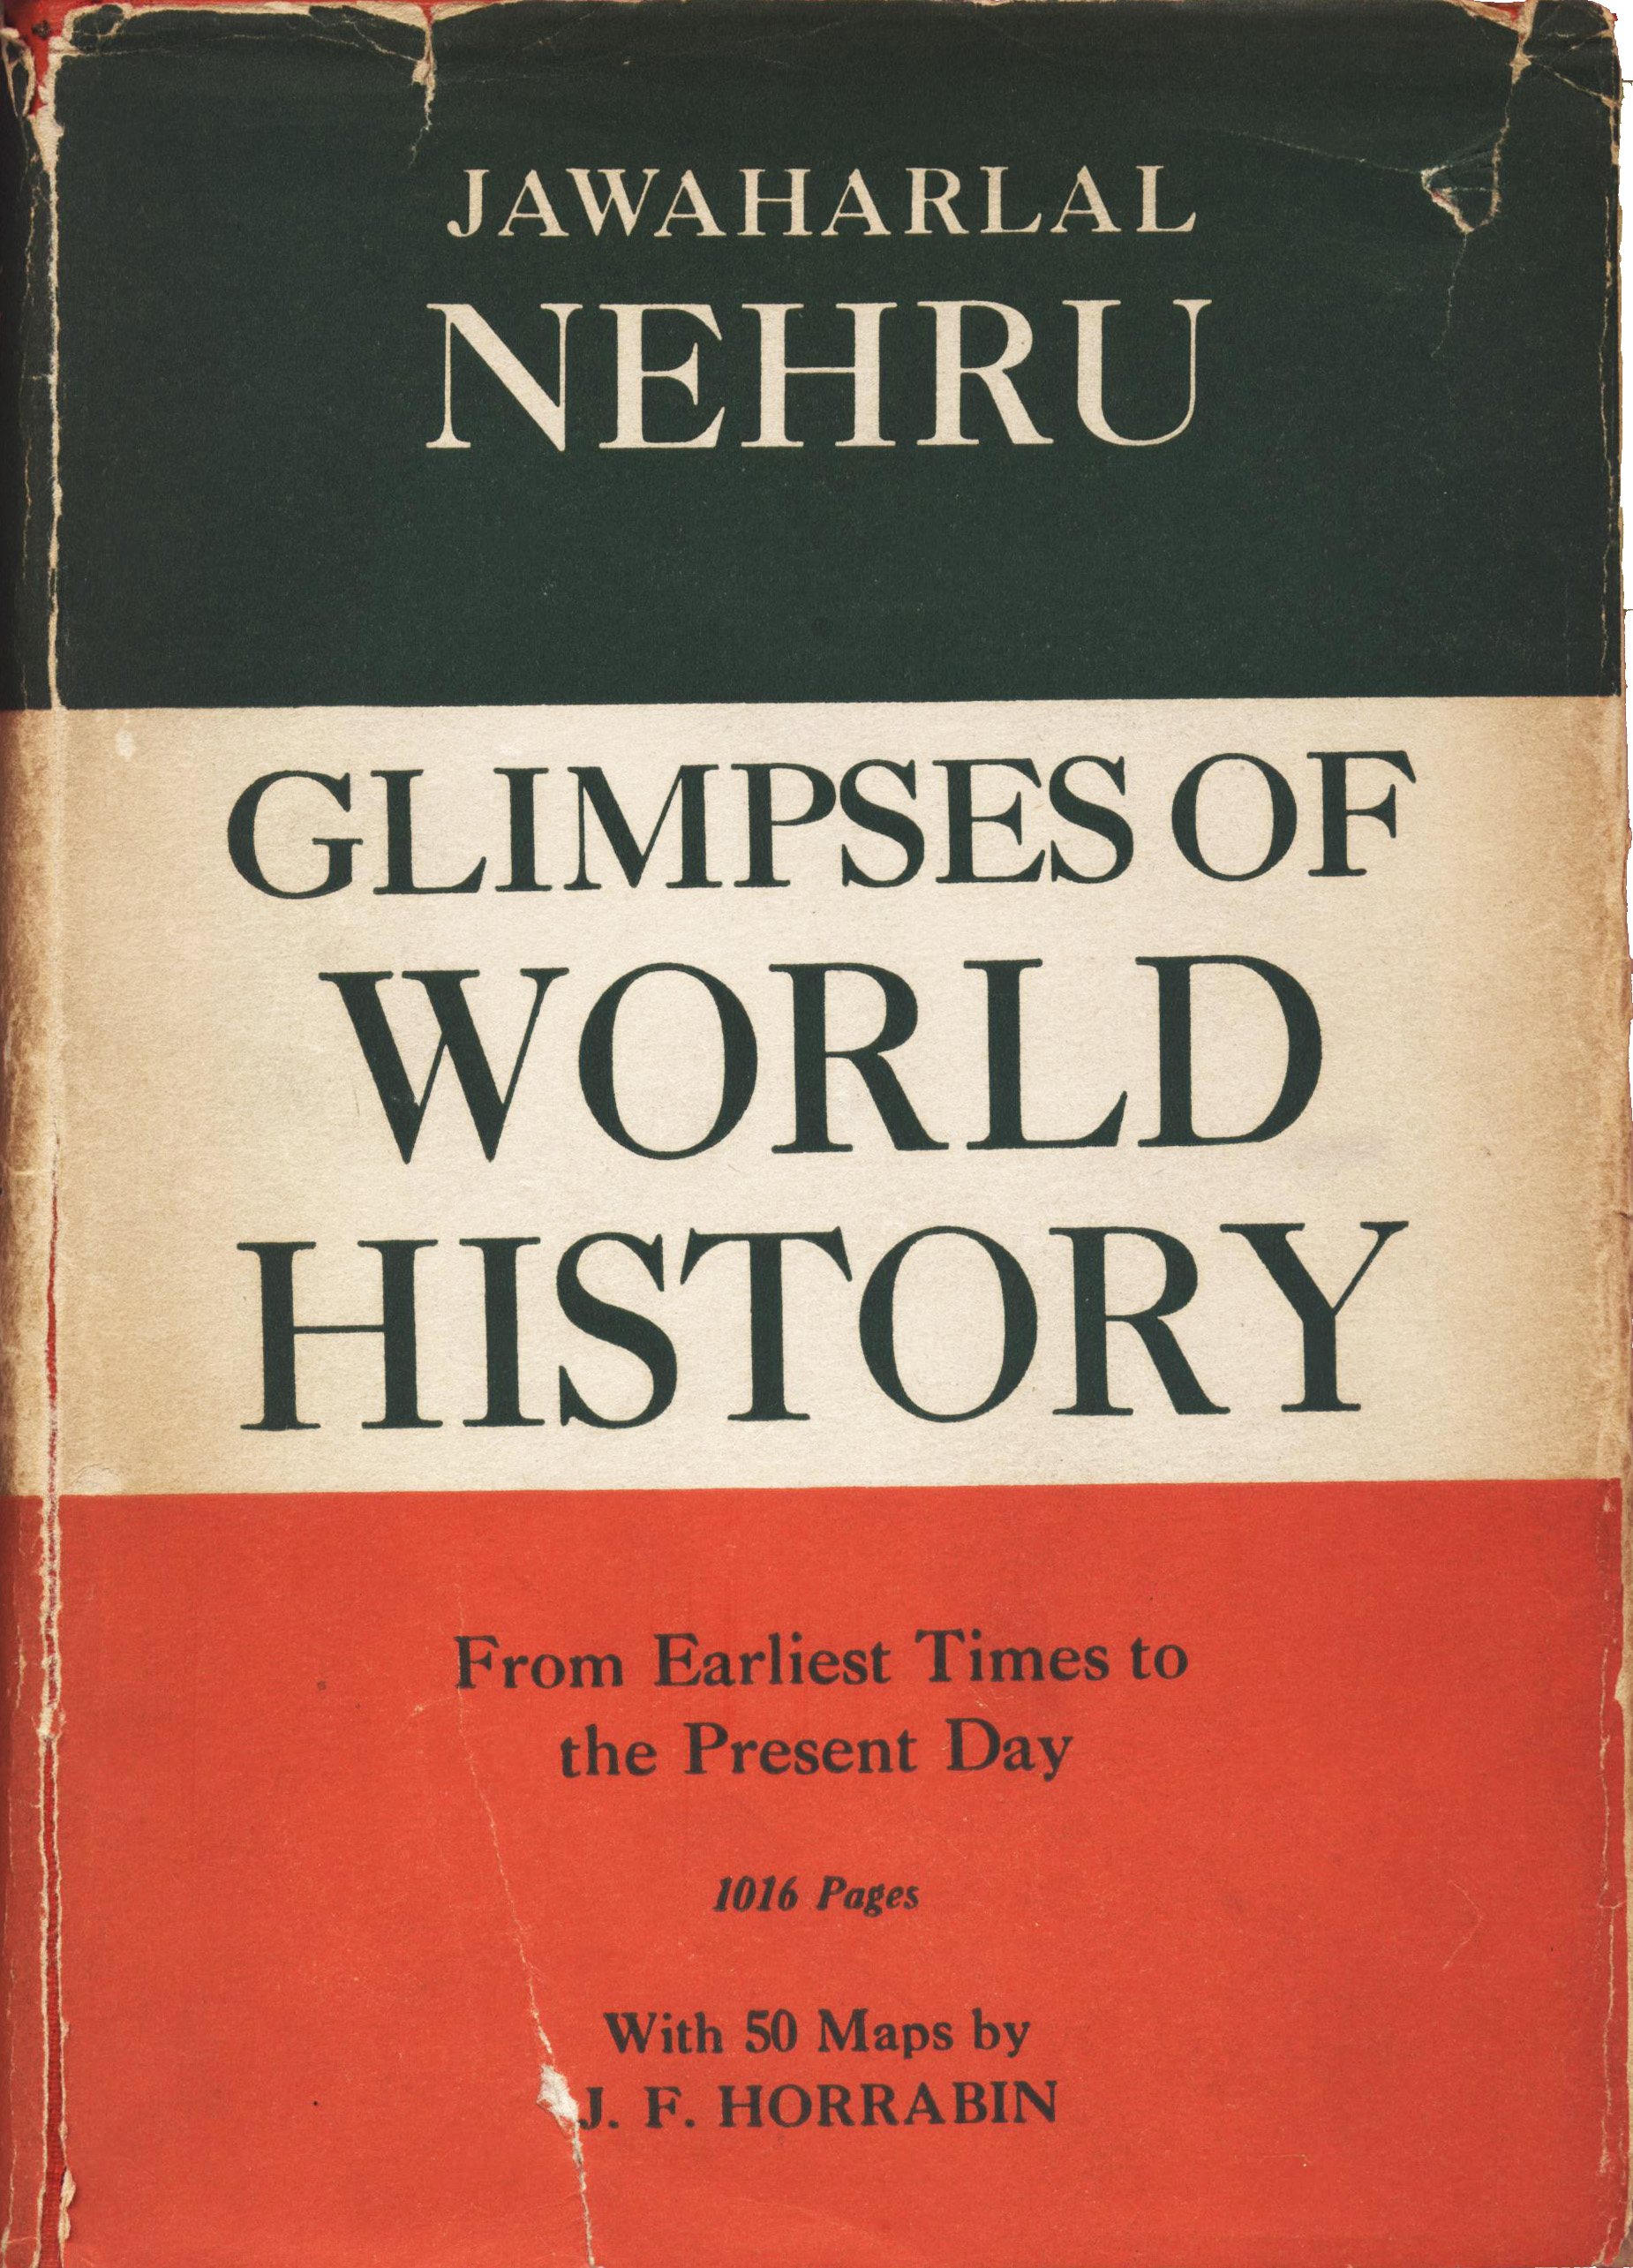 Nehru_Glimpses of World History